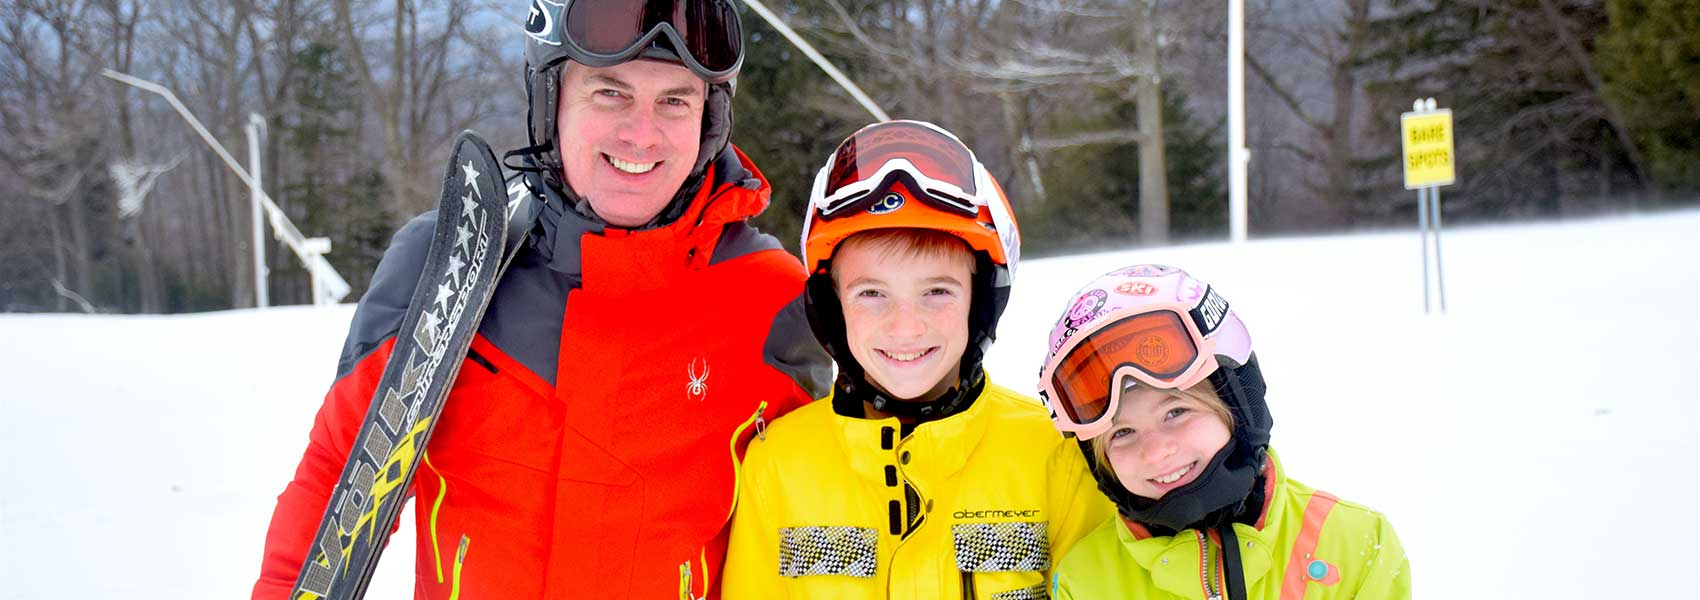 dad-and-kids-ready-to-go-skiing